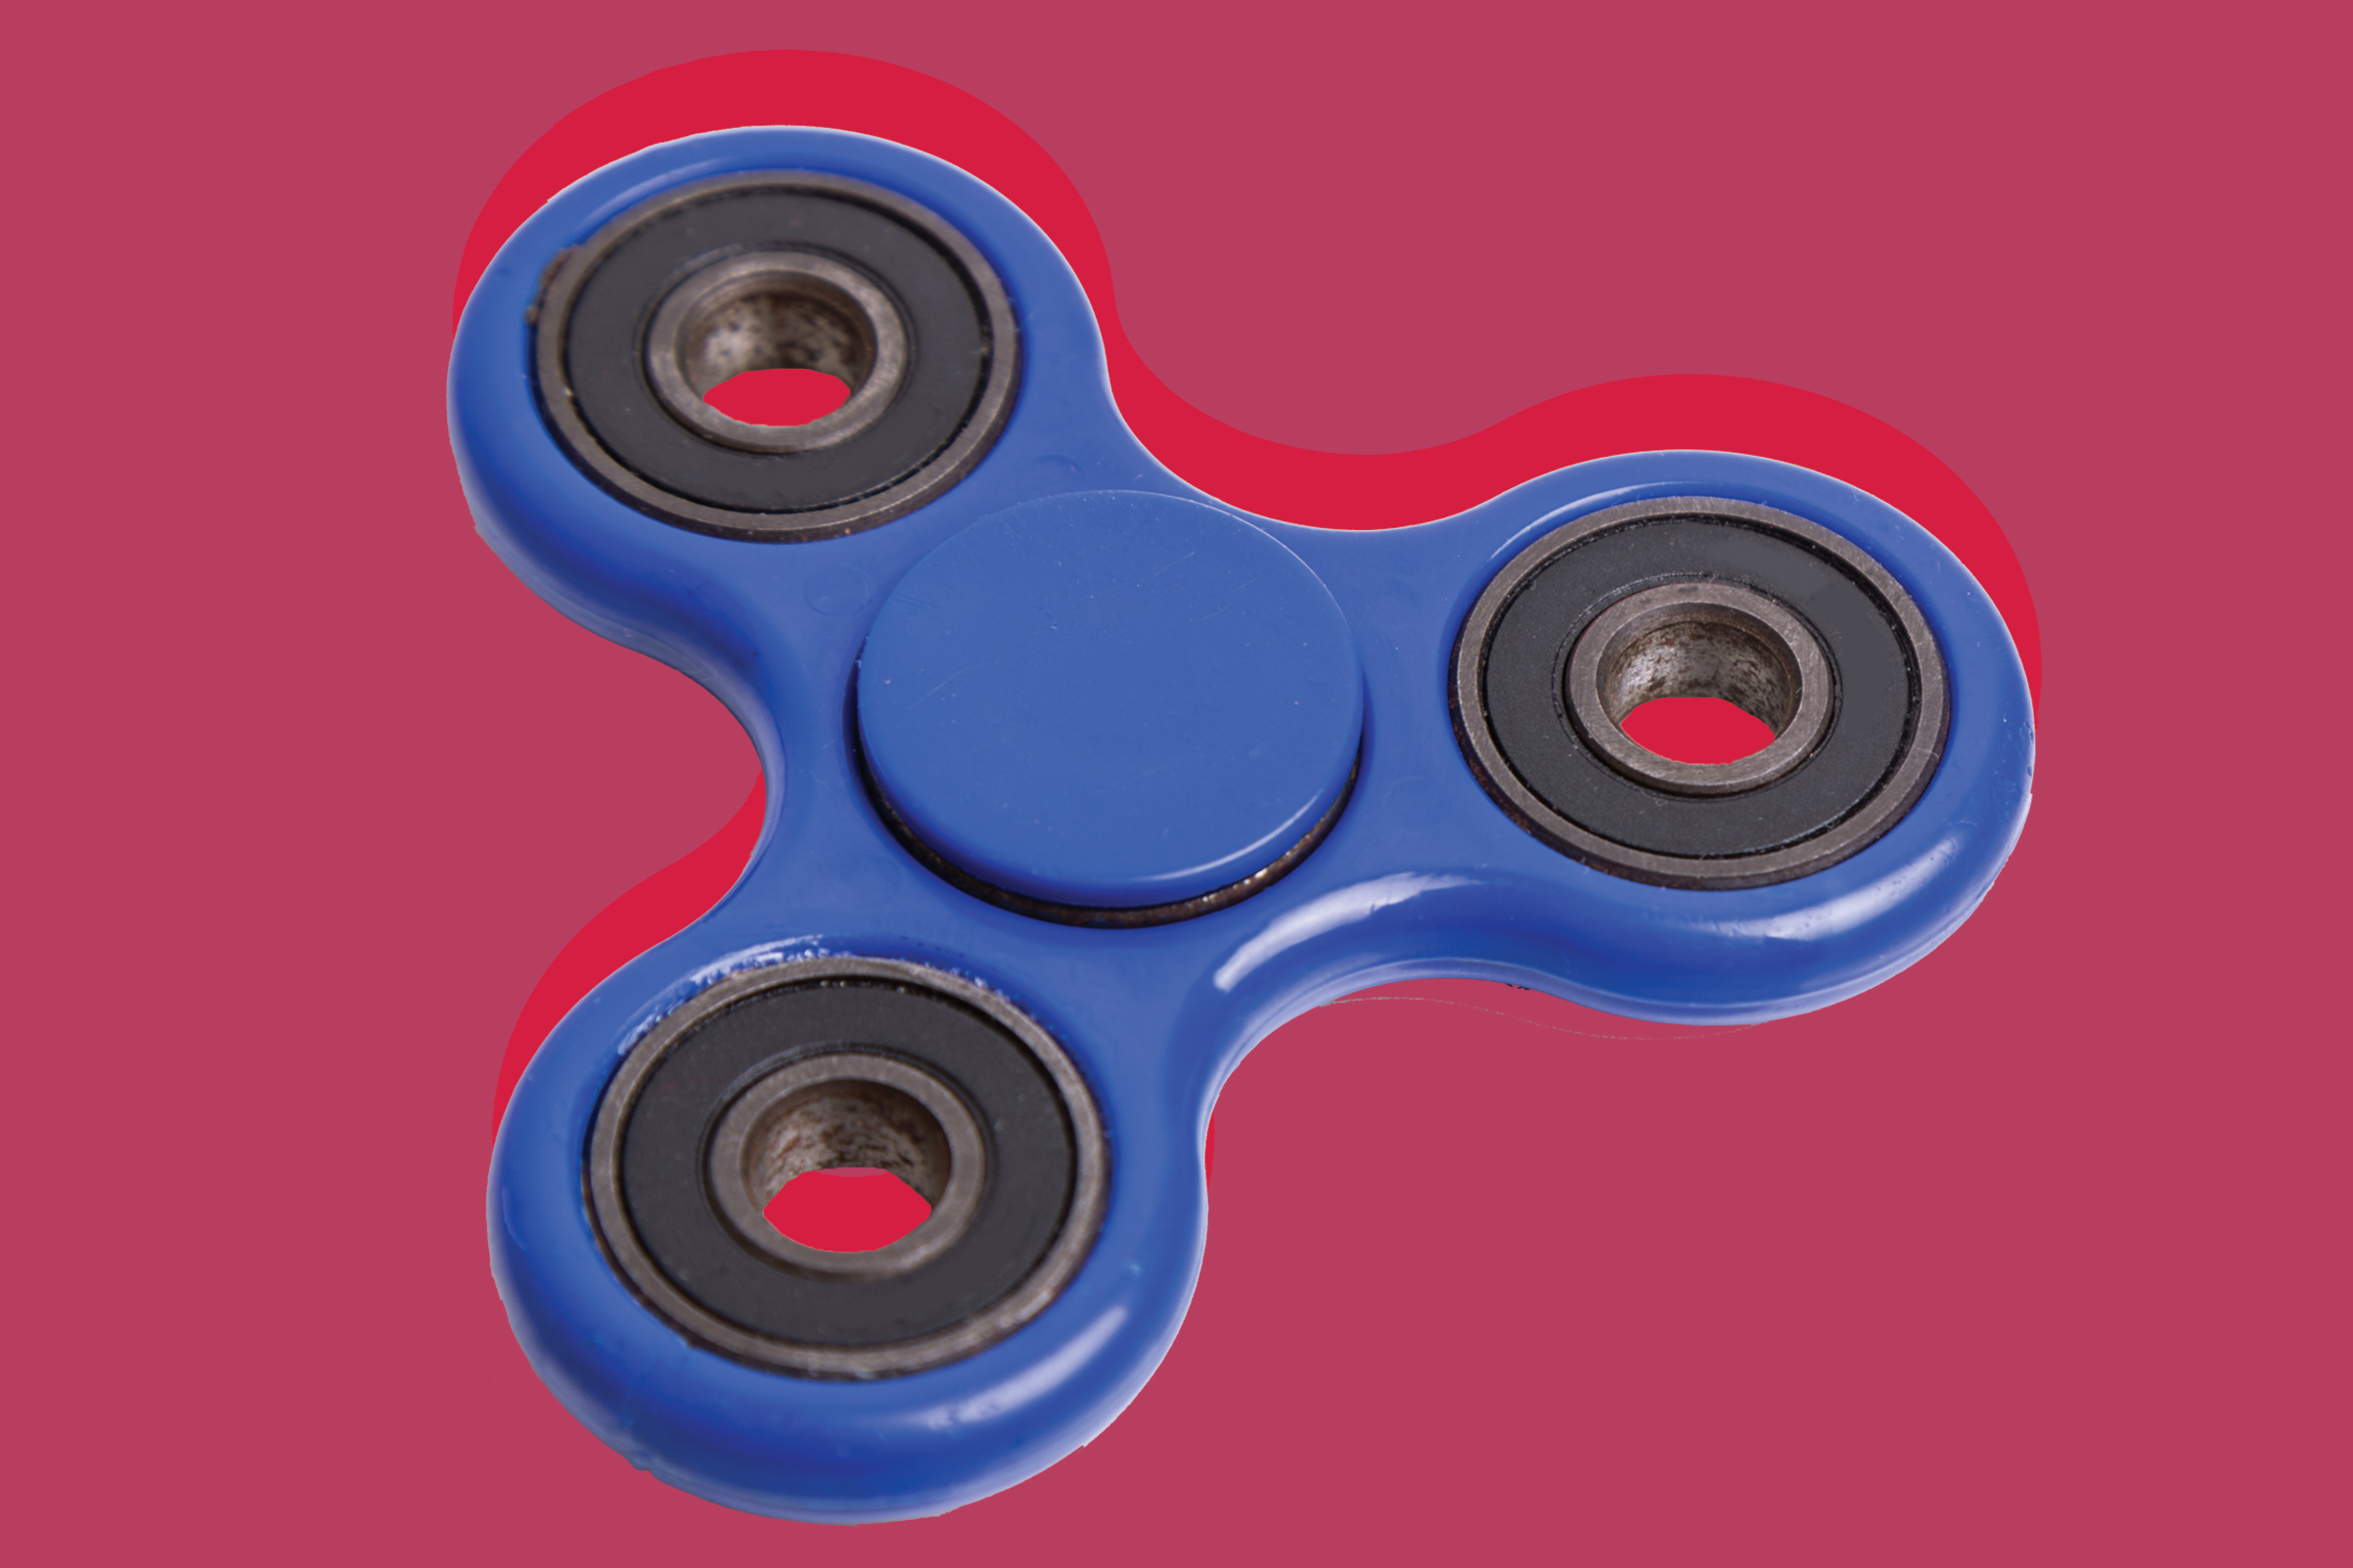 Fidget spinners are one of the best inventions of 2017